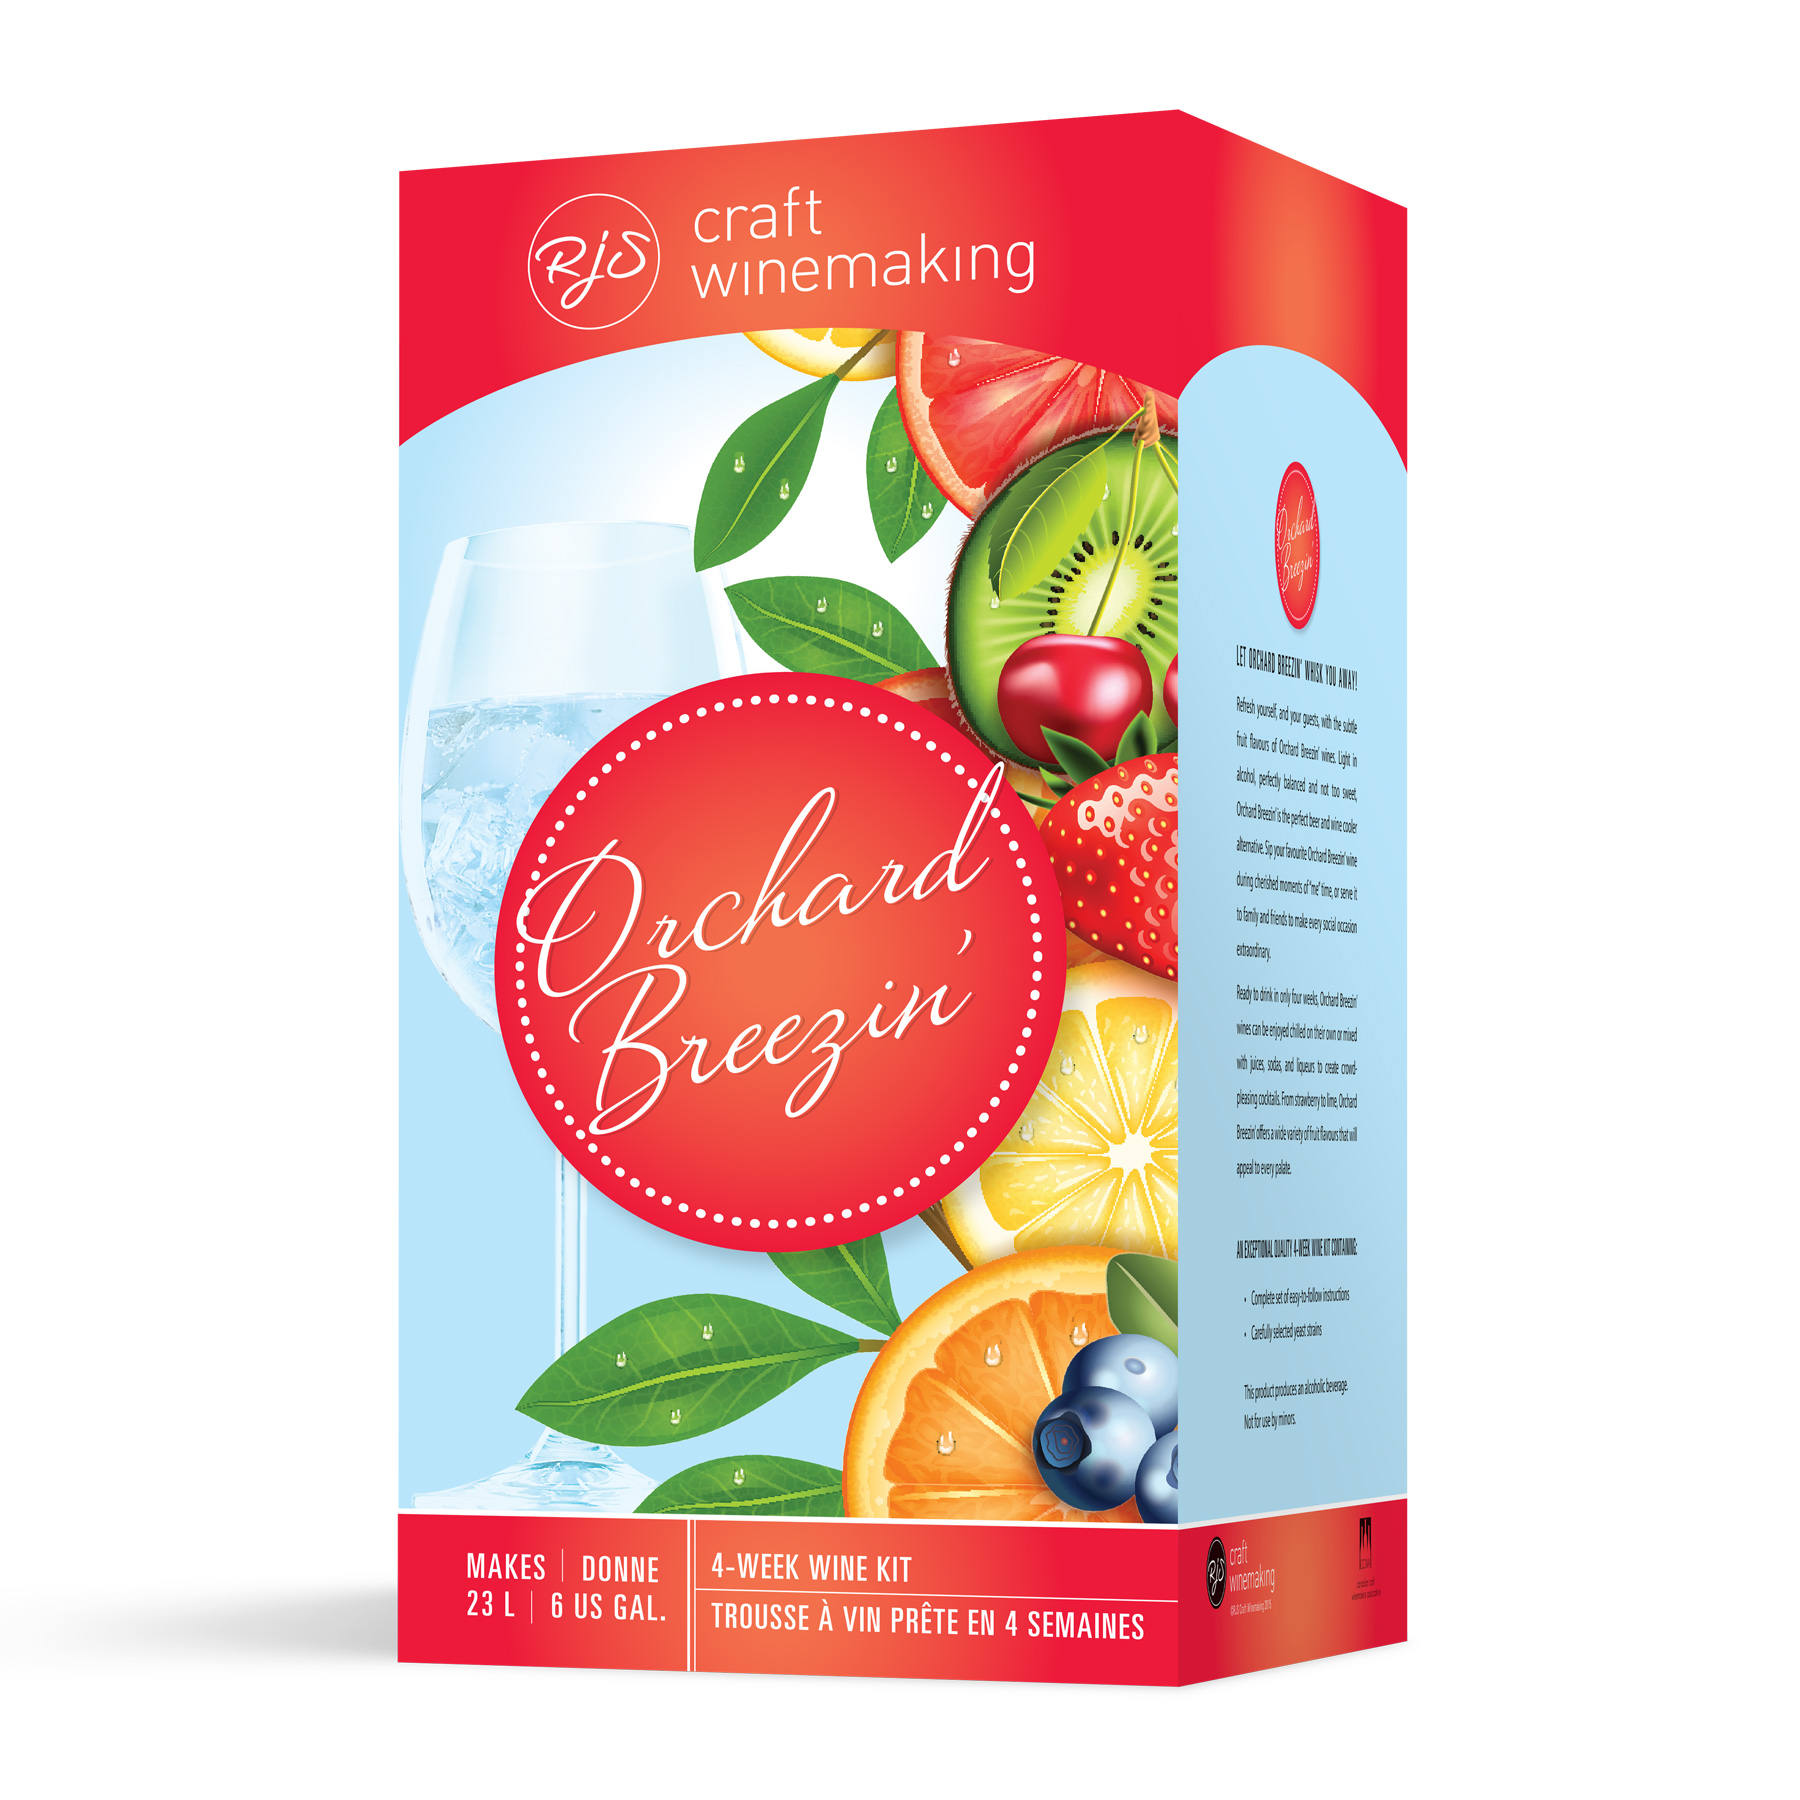 Orchard Breezin' Fruit Wines